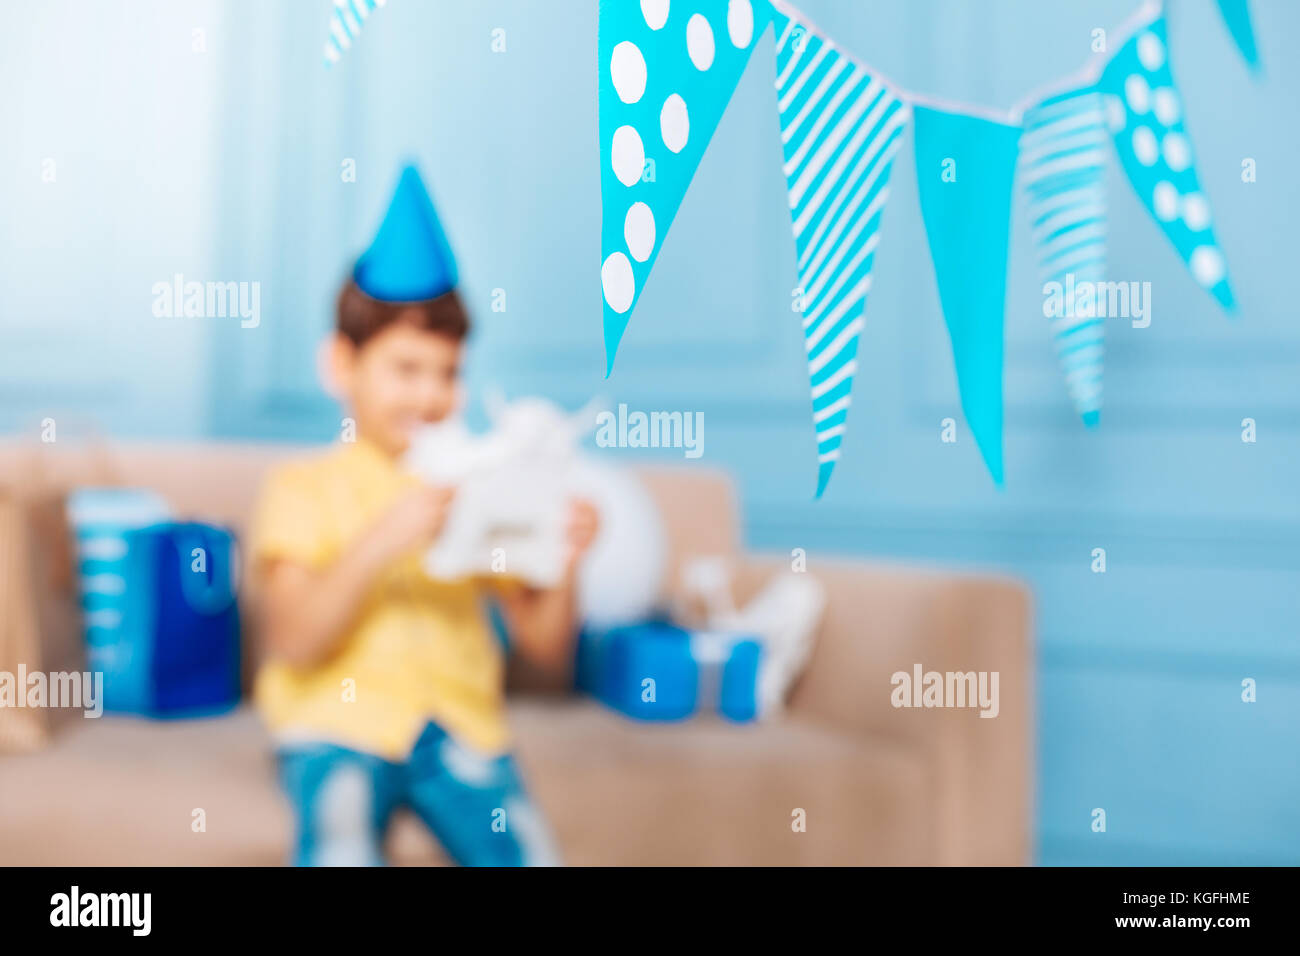 Flags hanging in the room decorated for birthday party - Stock Image